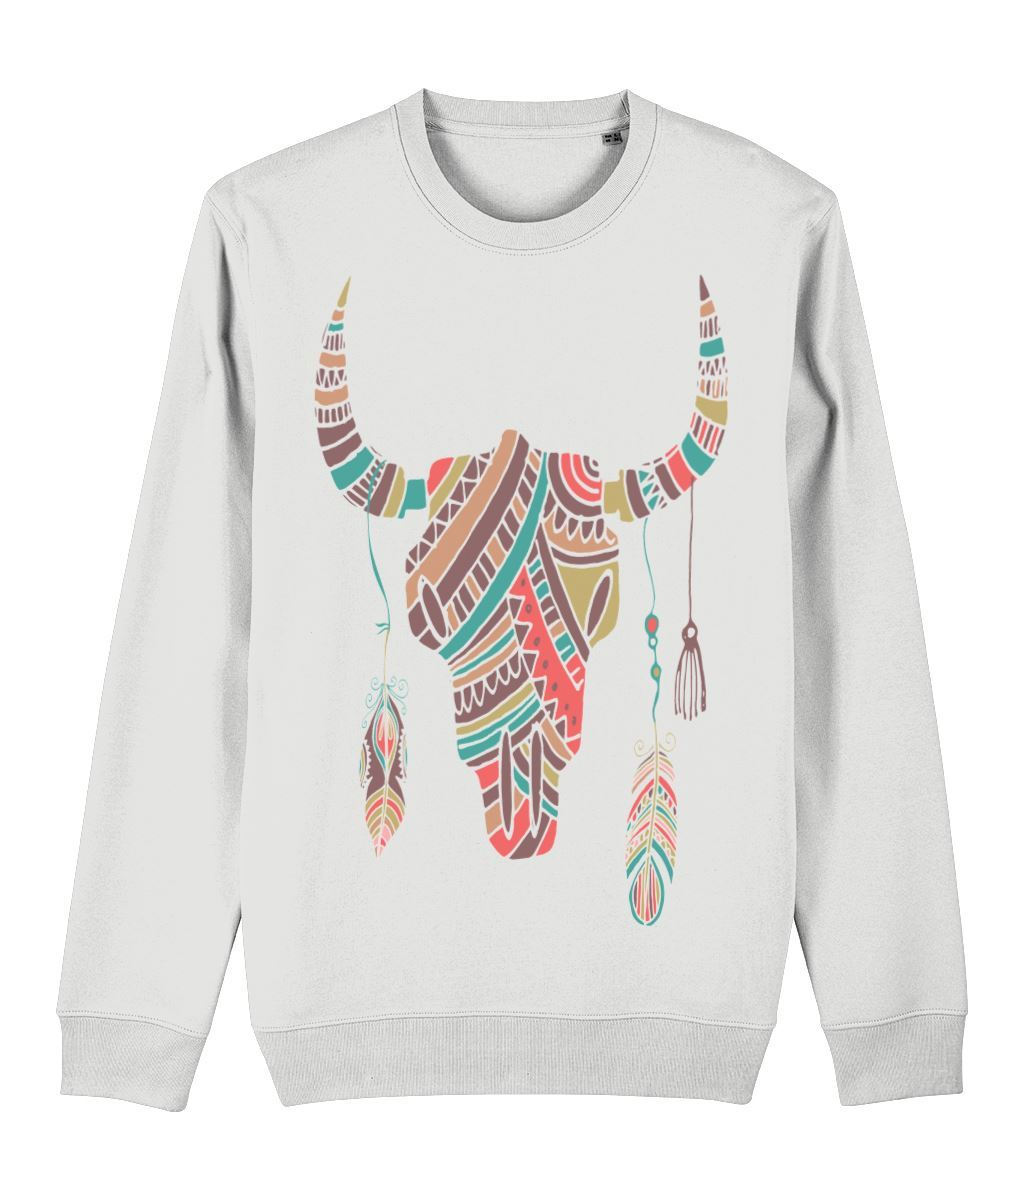 Ethnic Bull Skull Sweatshirt Clothing IndianBelieves White X-Small